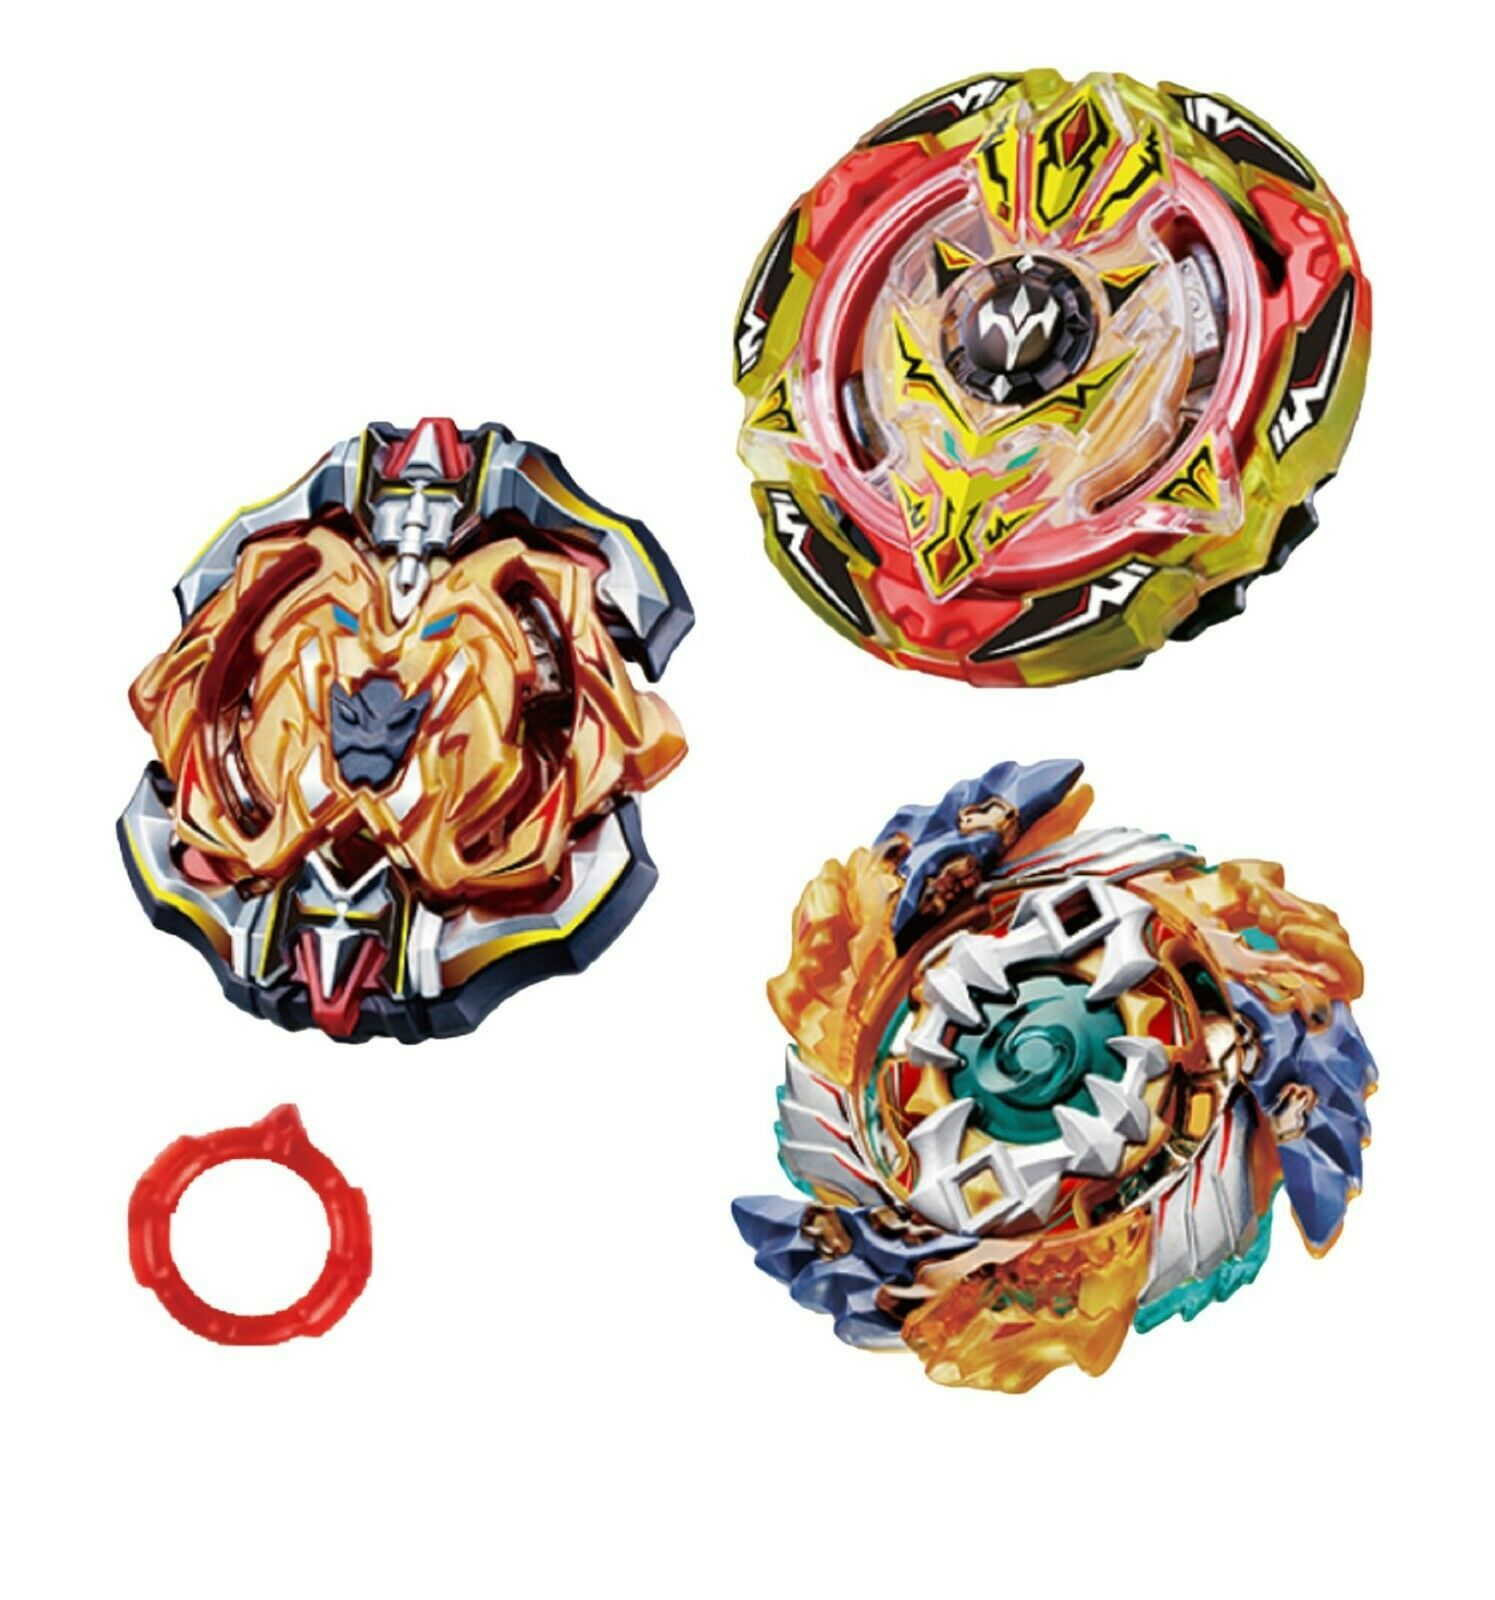 Takaratomy Beyblade Burst Best Customize Set Volume 2 B-103 B-115 B-122 Top Toy